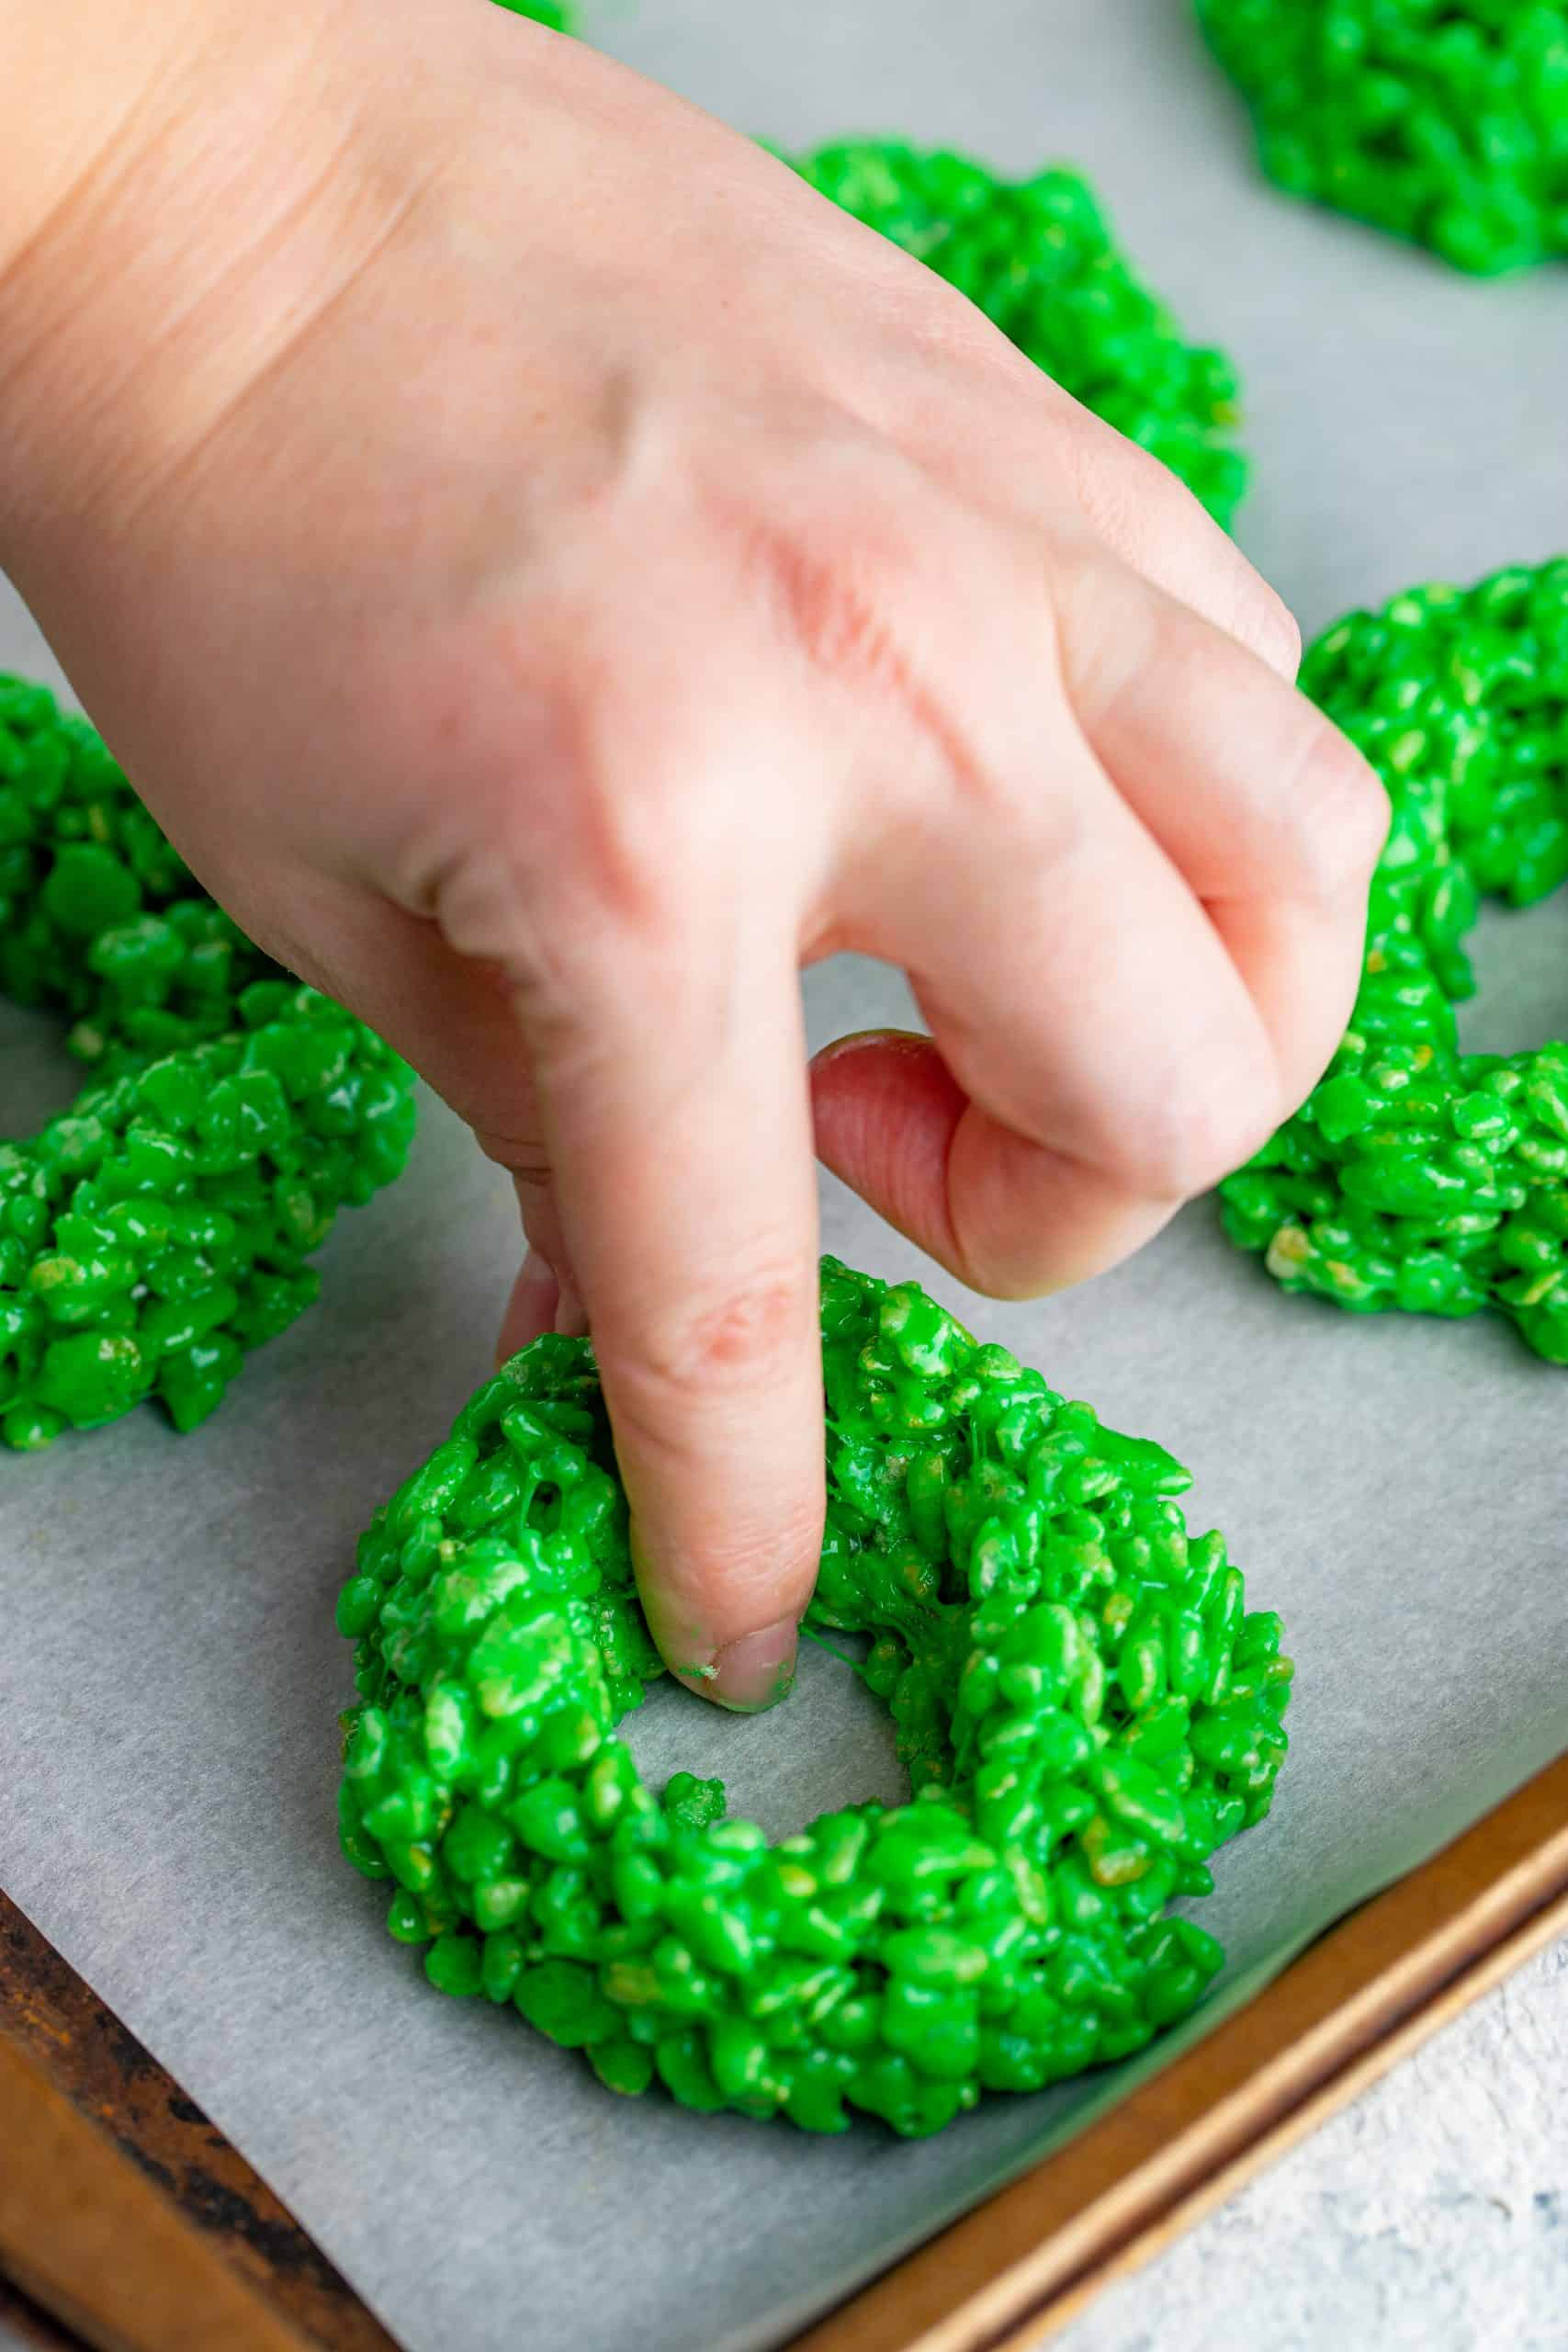 a hand making a whole inside the green krispy treat ball to make an open center.